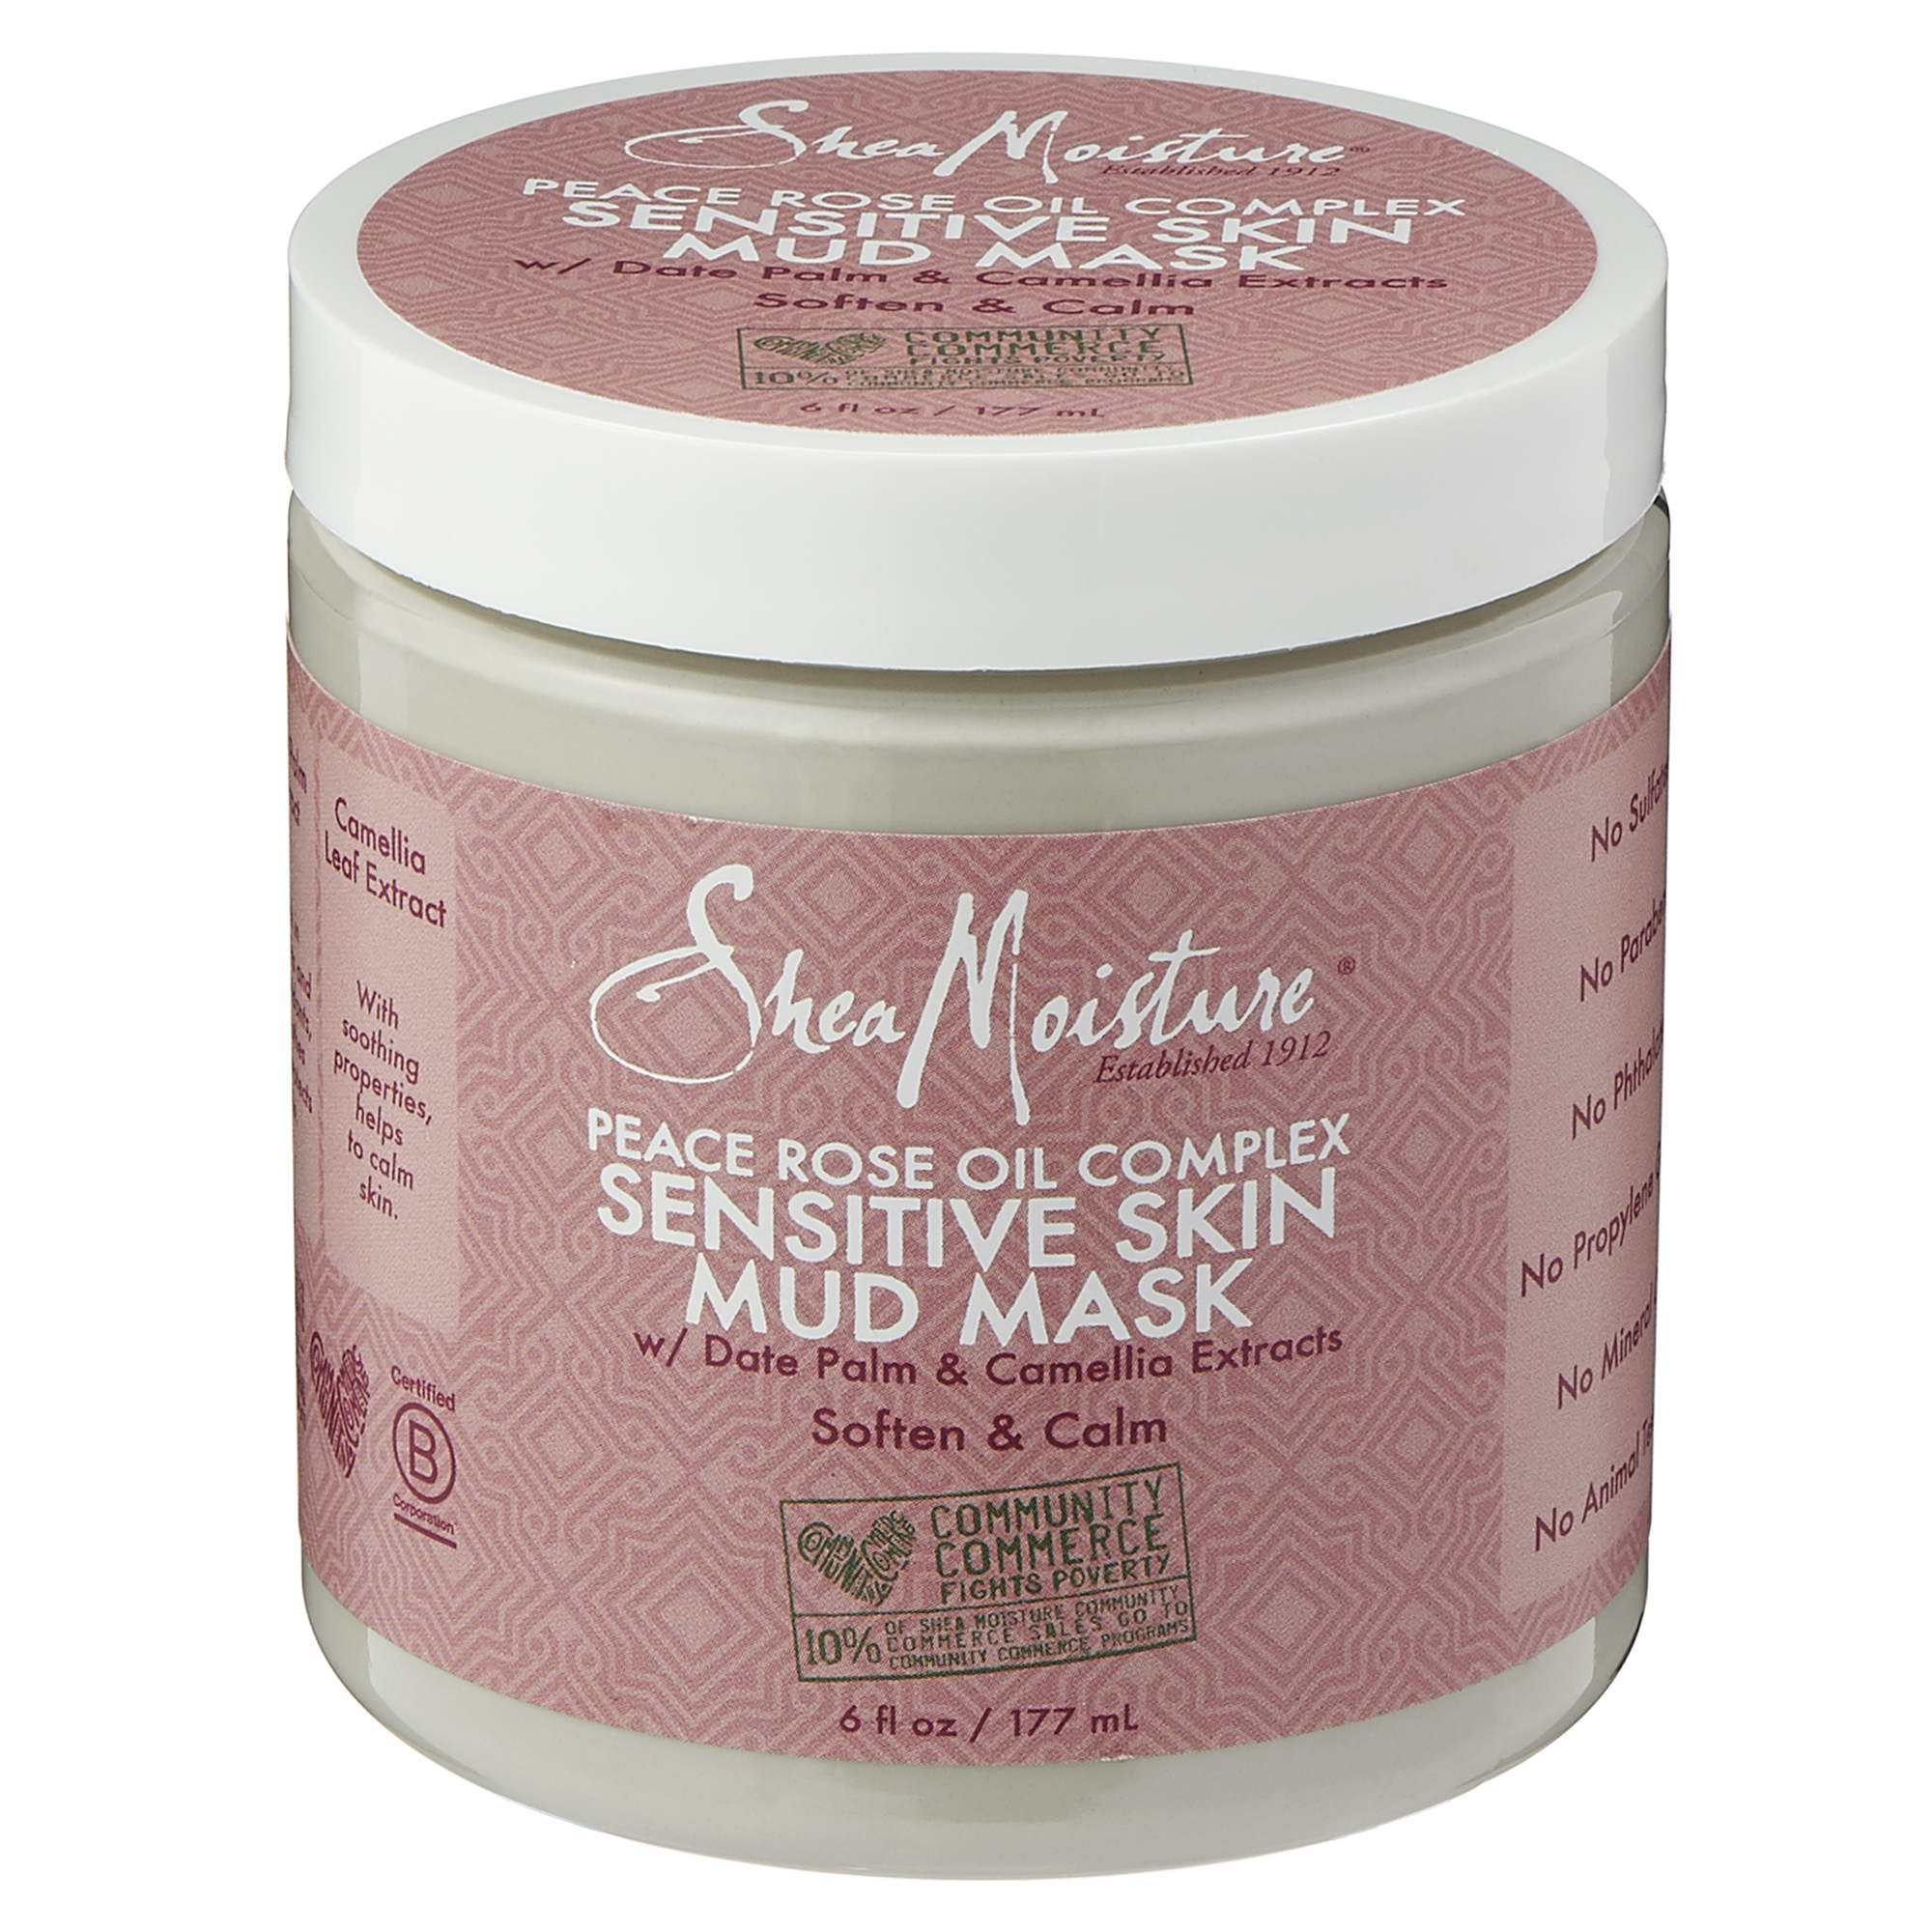 SHEAMOISTURE'S PEACE ROSE OIL COMPLEX SENSITIVE SKIN MUD MASK W/ DATE PALM AND CAMELLIA EXTRACTS by Sundial Brands